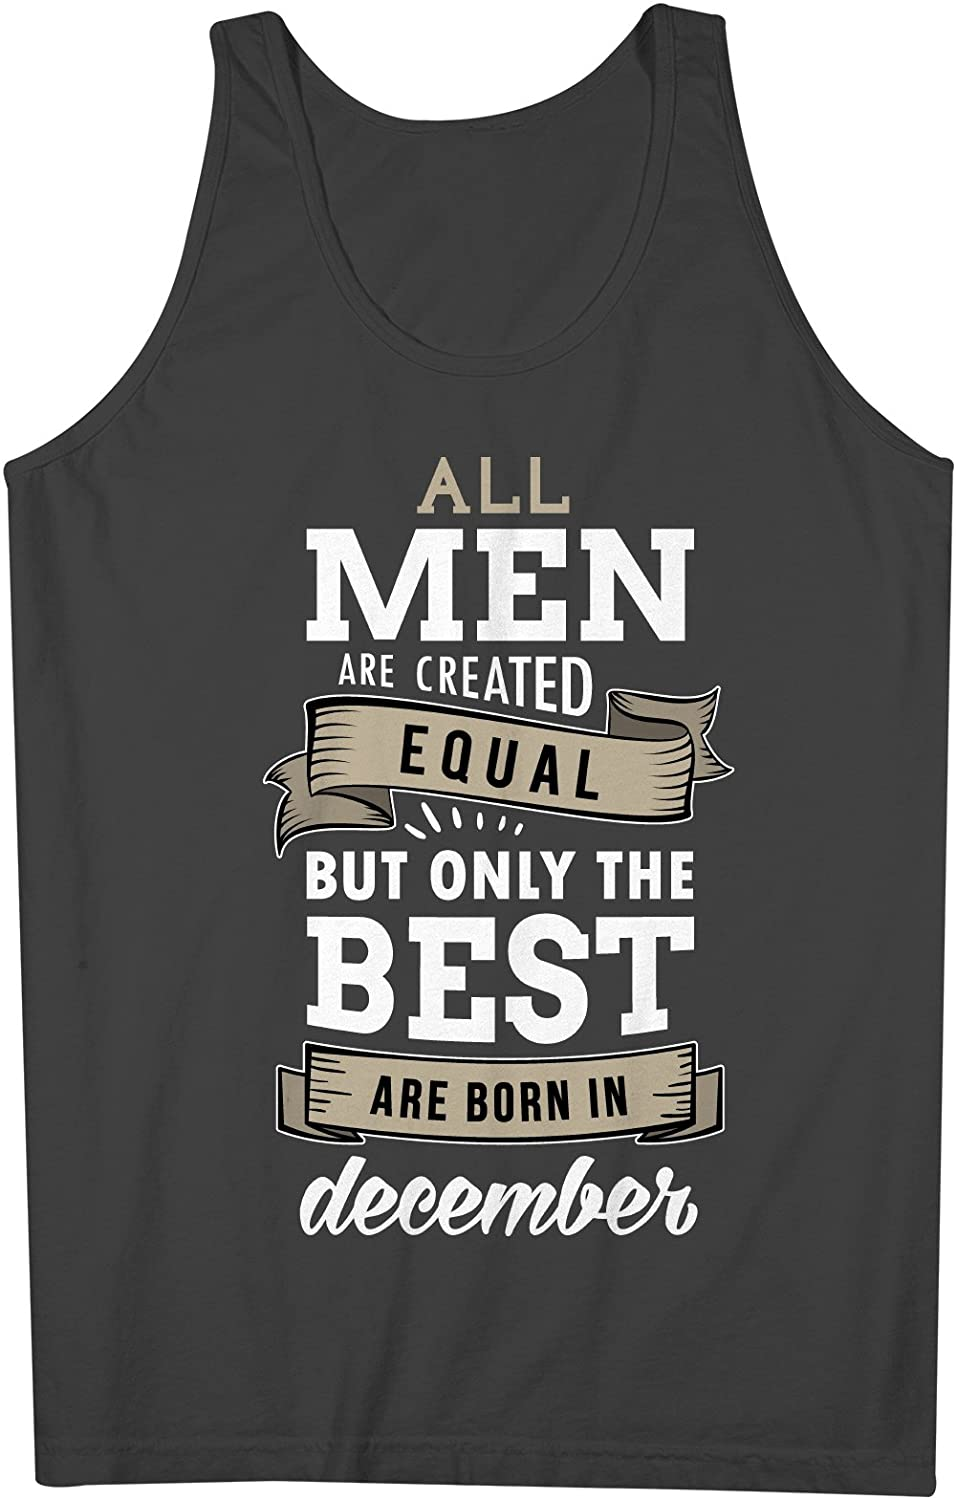 All Men Are Created Equal But Only The Best Are Born In December お誕生日 男性用 Tank Top Sleeveless Shirt